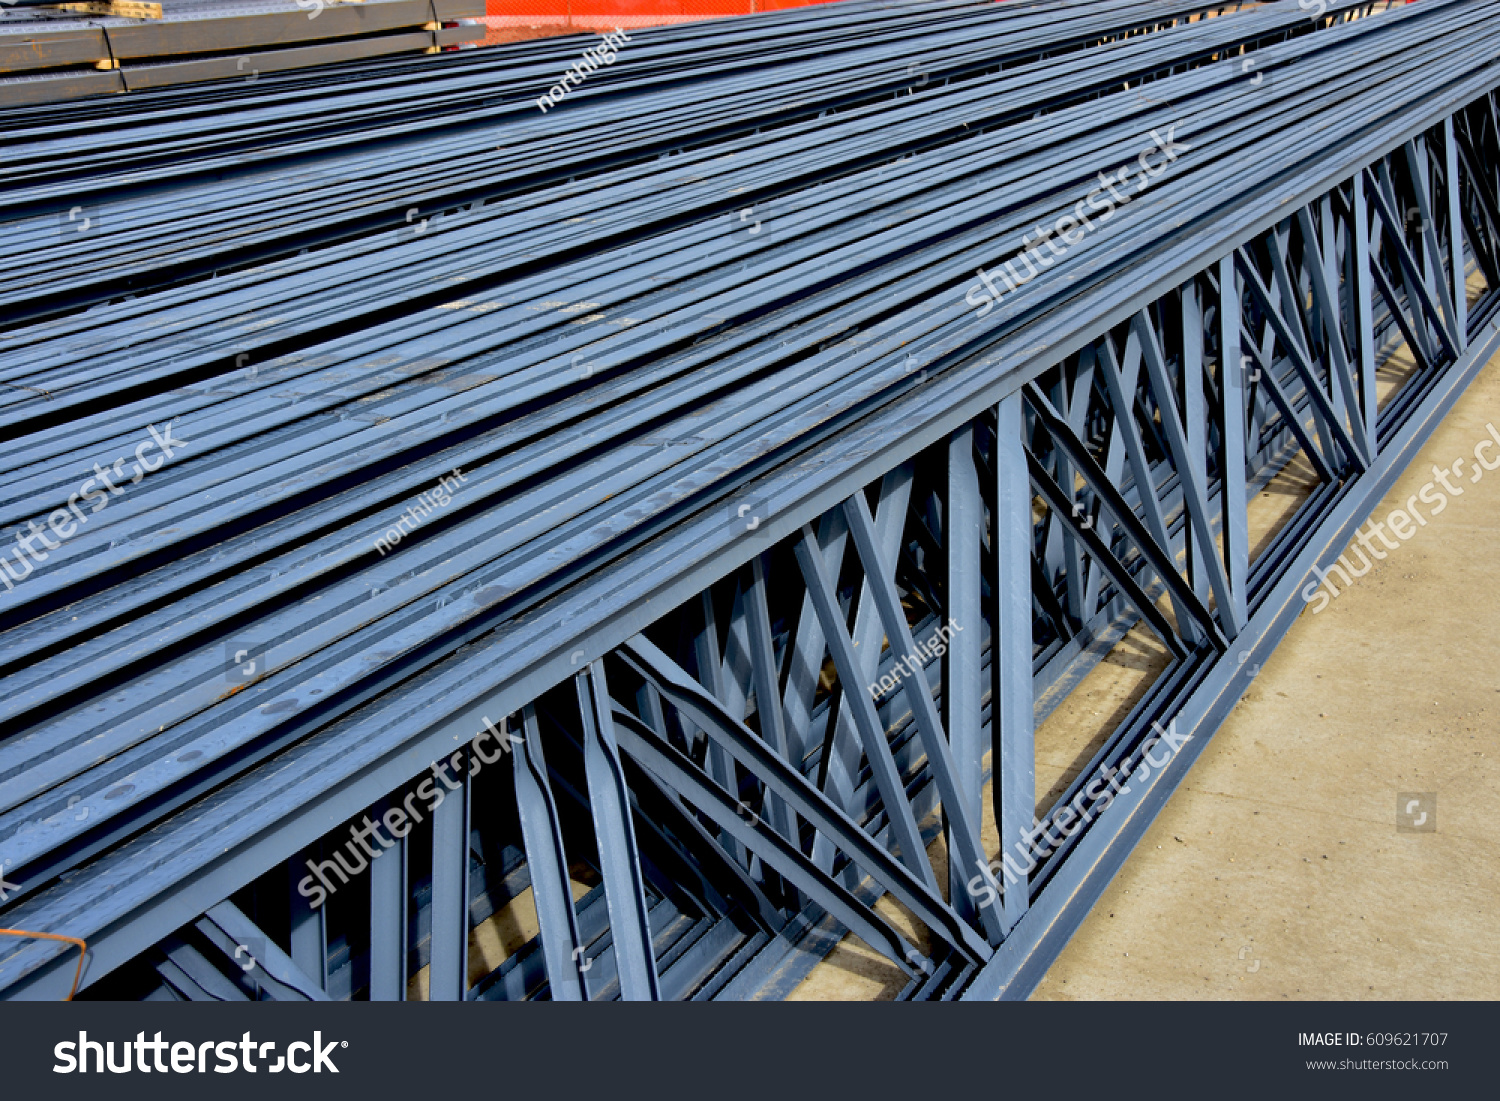 Steel Building Materials : Steel building material nearby commercial construction